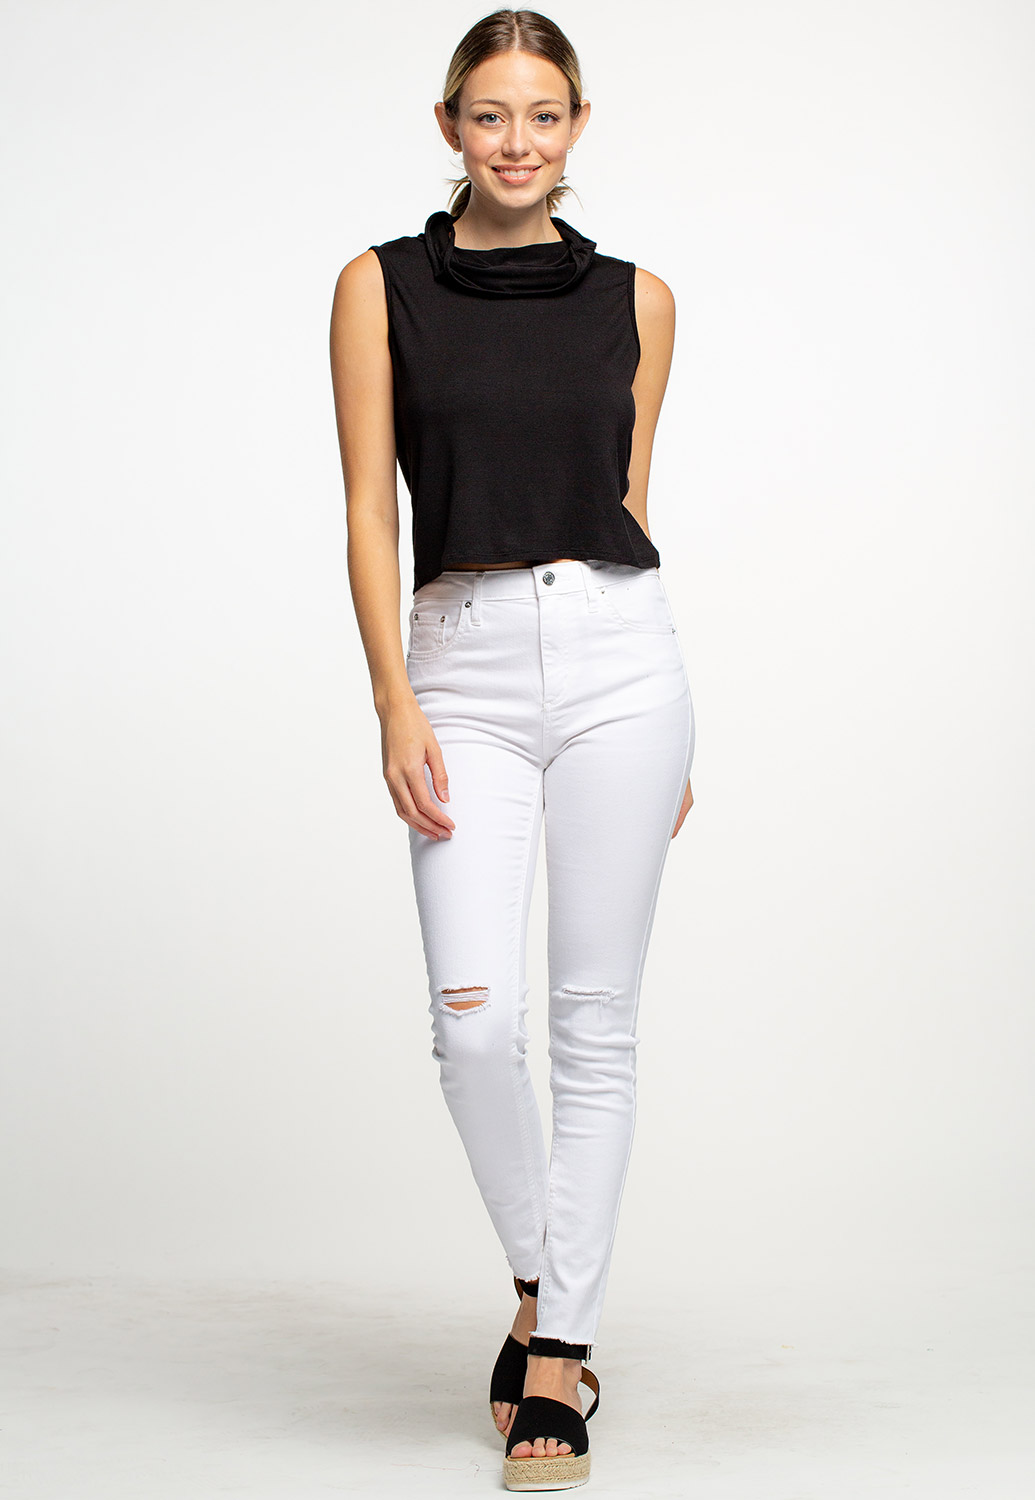 Face Cover Up Cowl Neck Tank Crop Top